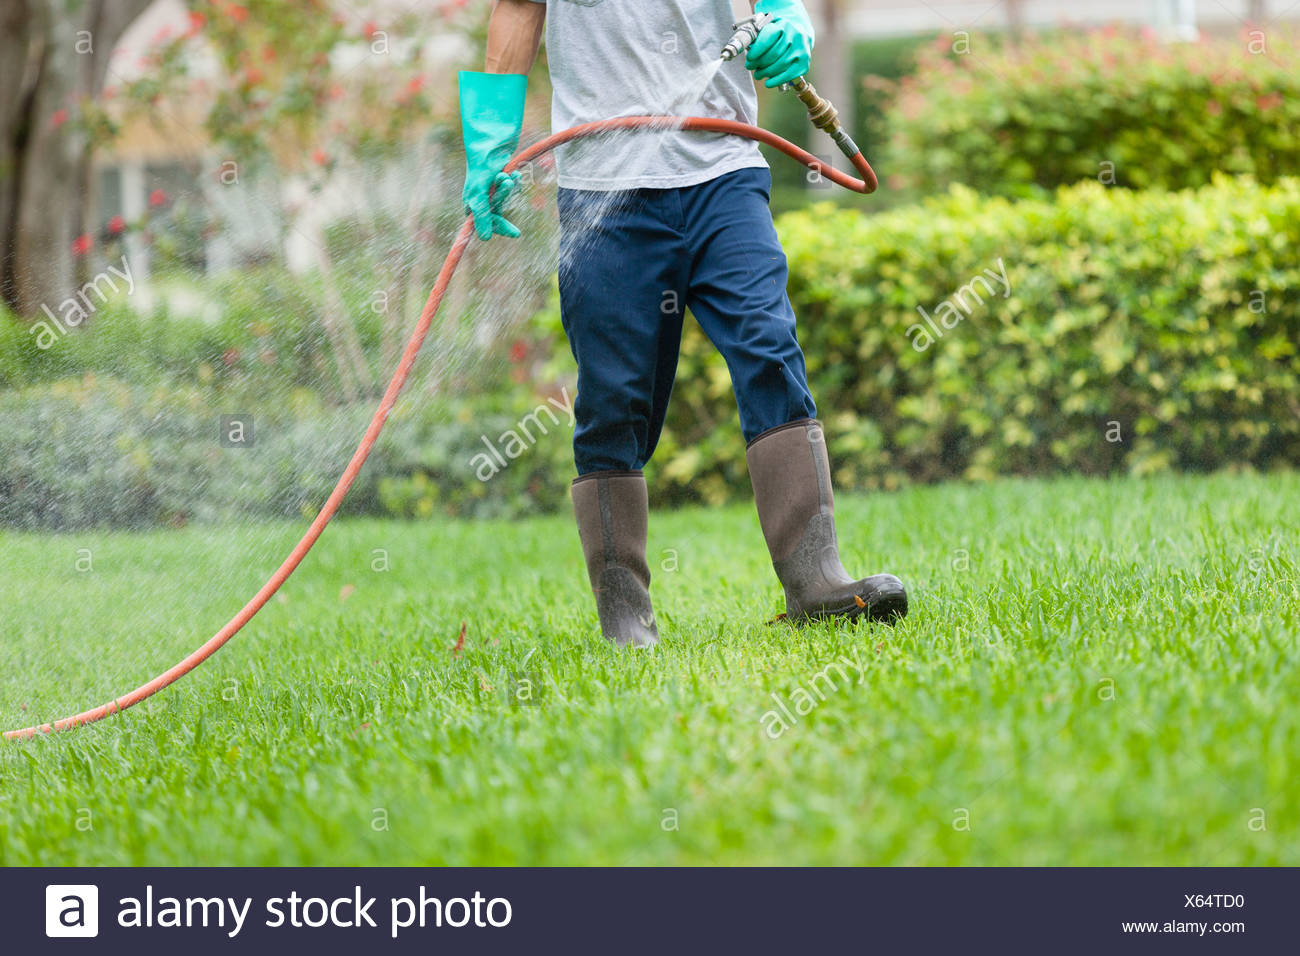 Pest control technician using high pressure spray gun and hose with heavy duty gloves - Stock Image